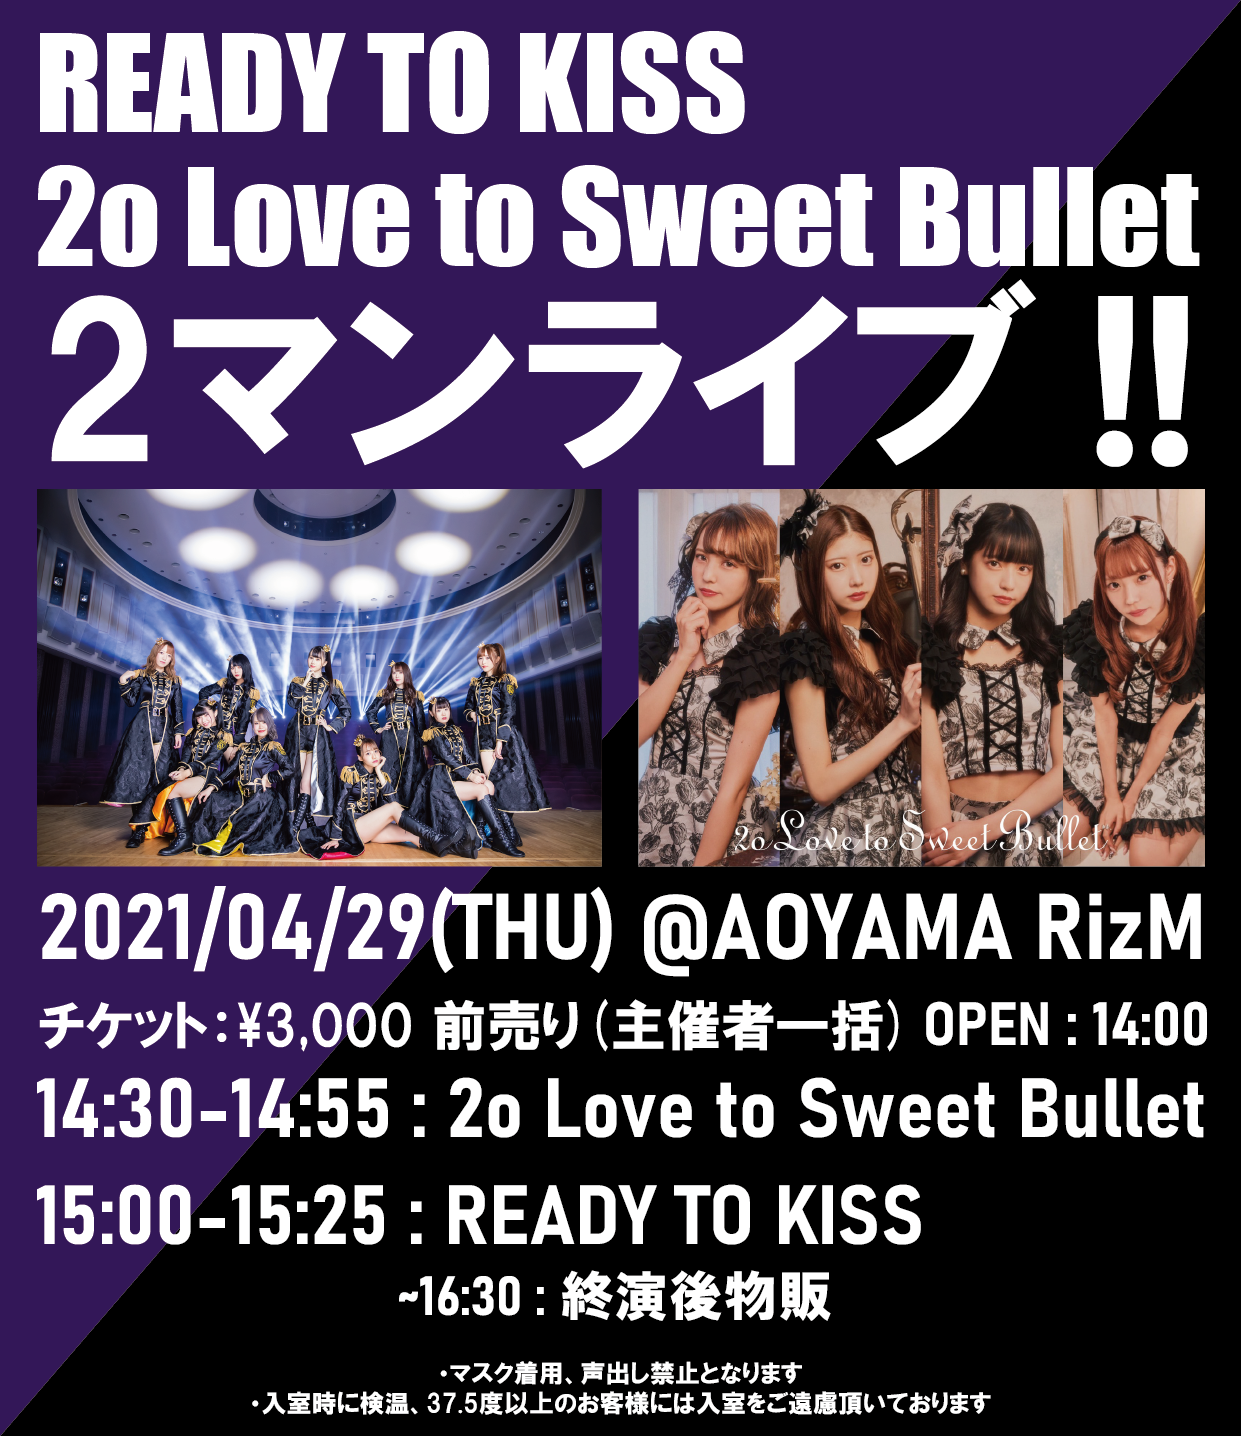 4月29日(祝・木) 『READY TO KISS、2o Love to Sweet Bullet 2マンライブ!!』